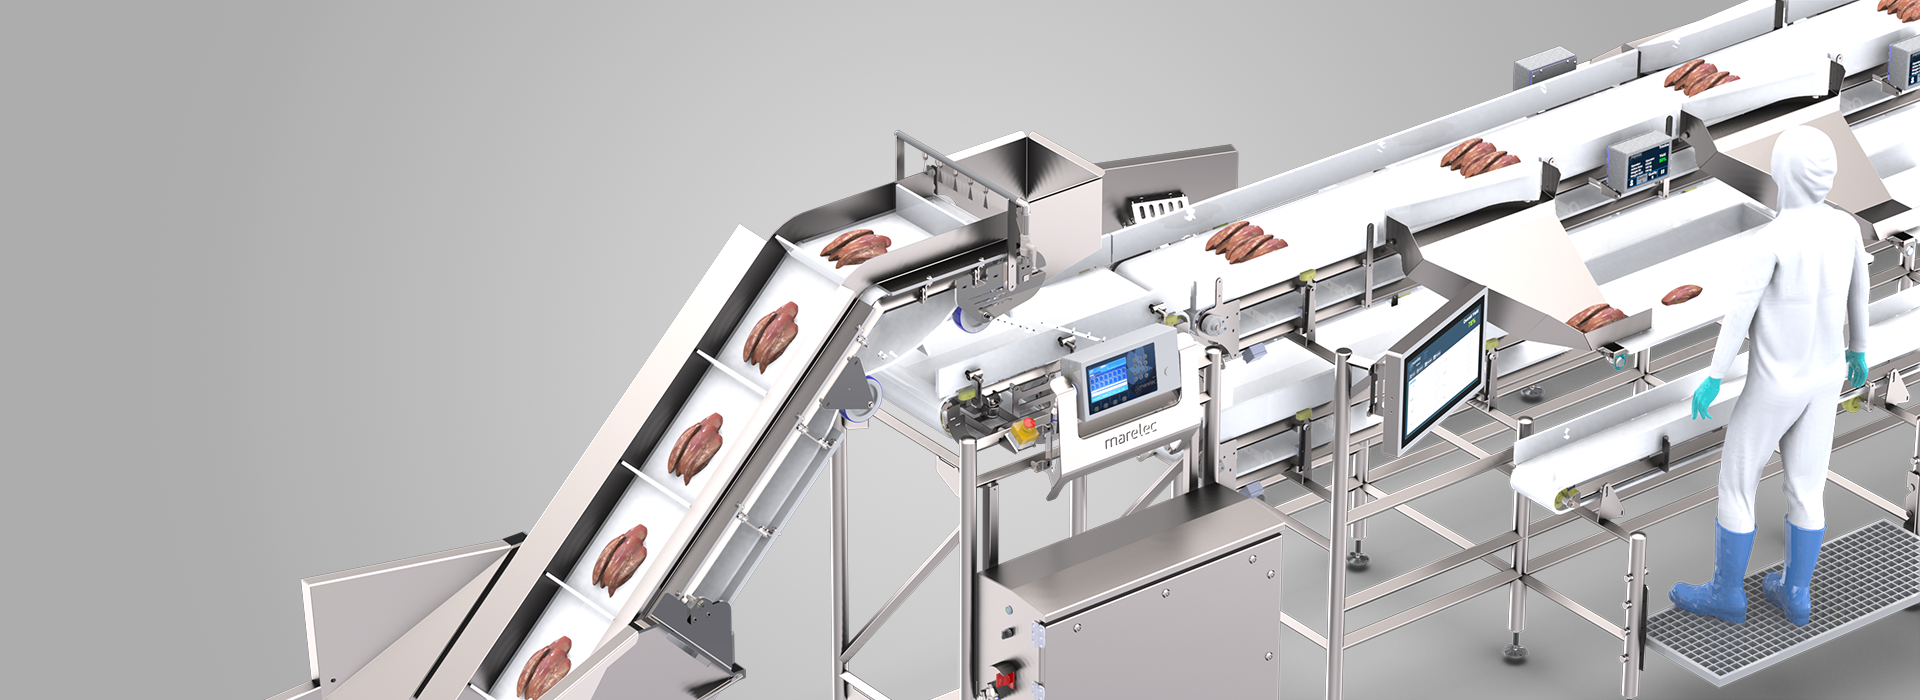 Intelligent poultry trimming line monitoring live yield, capacity, and quality per operator